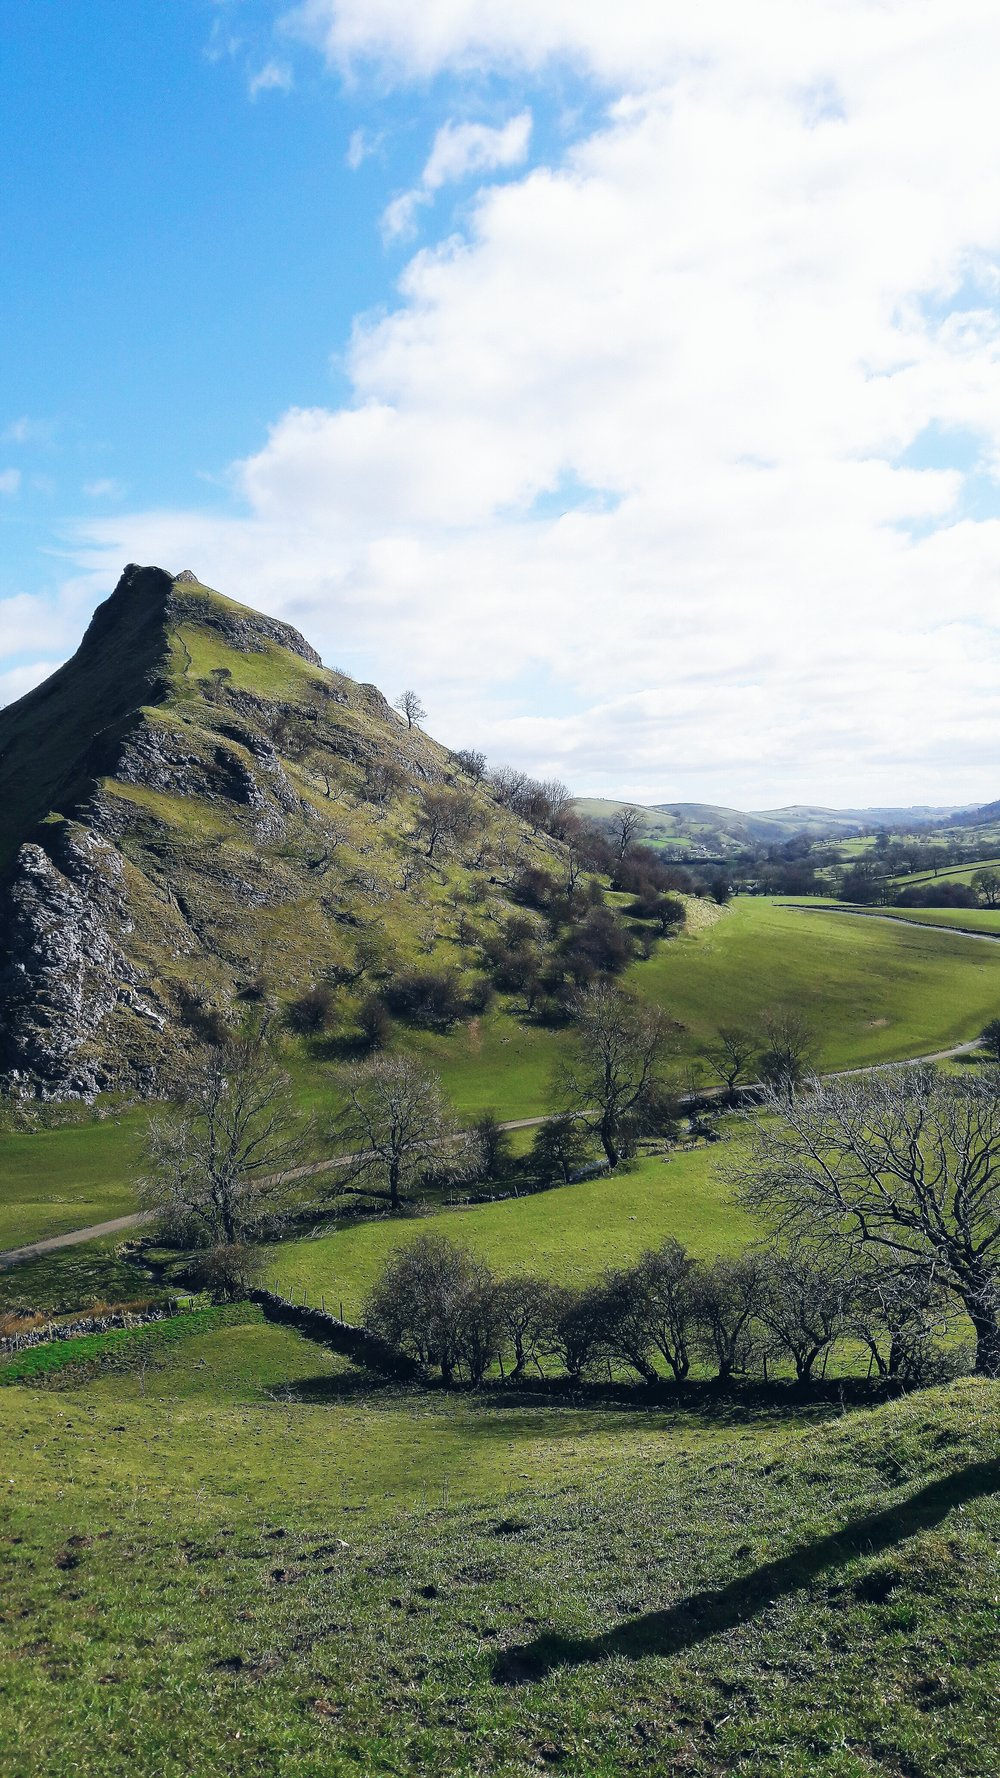 Chrome Hill from across the Peak District